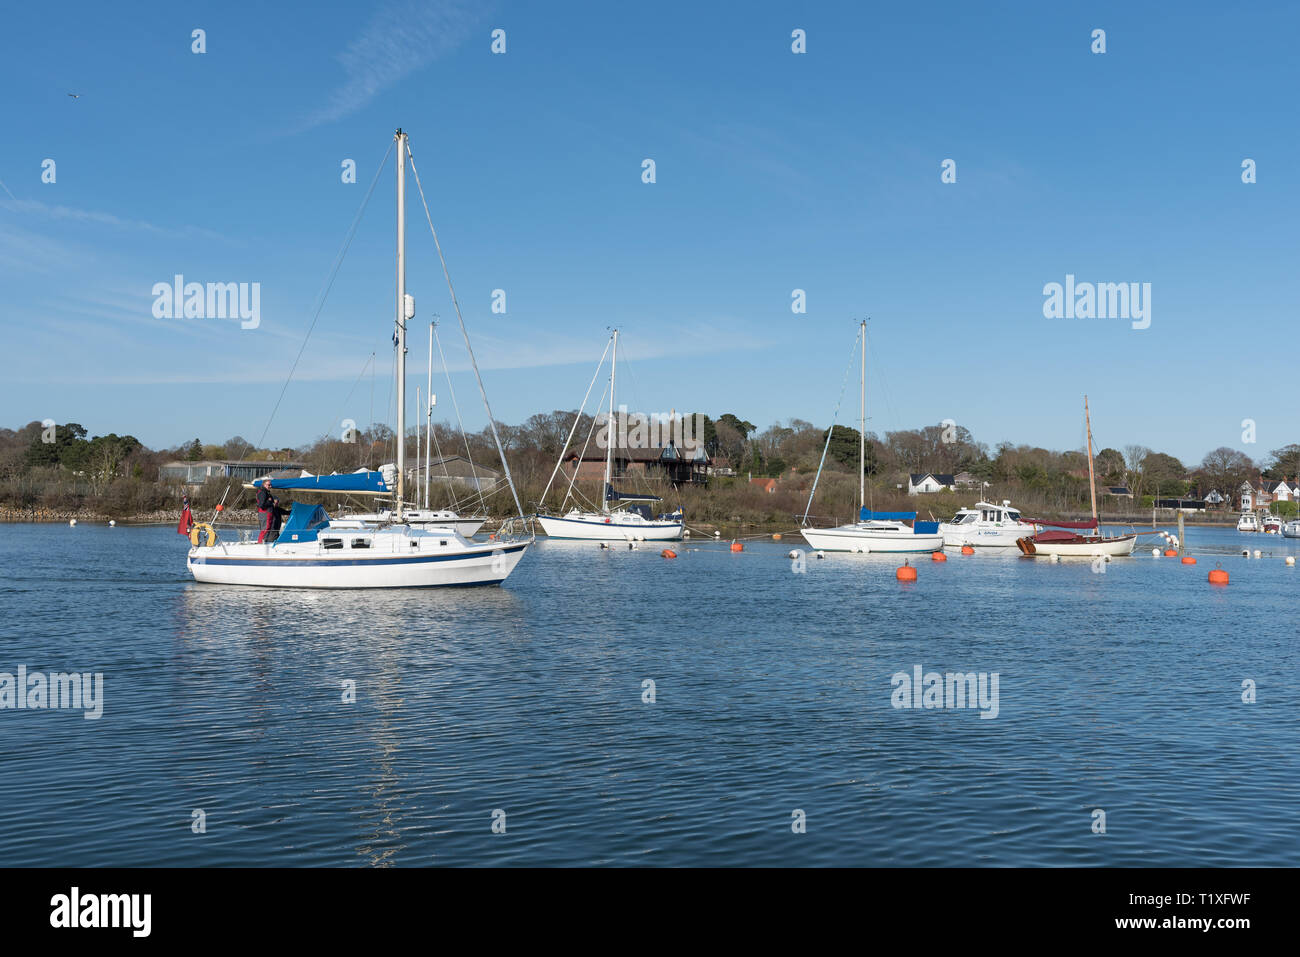 lymington harbour pier during the day - Stock Image